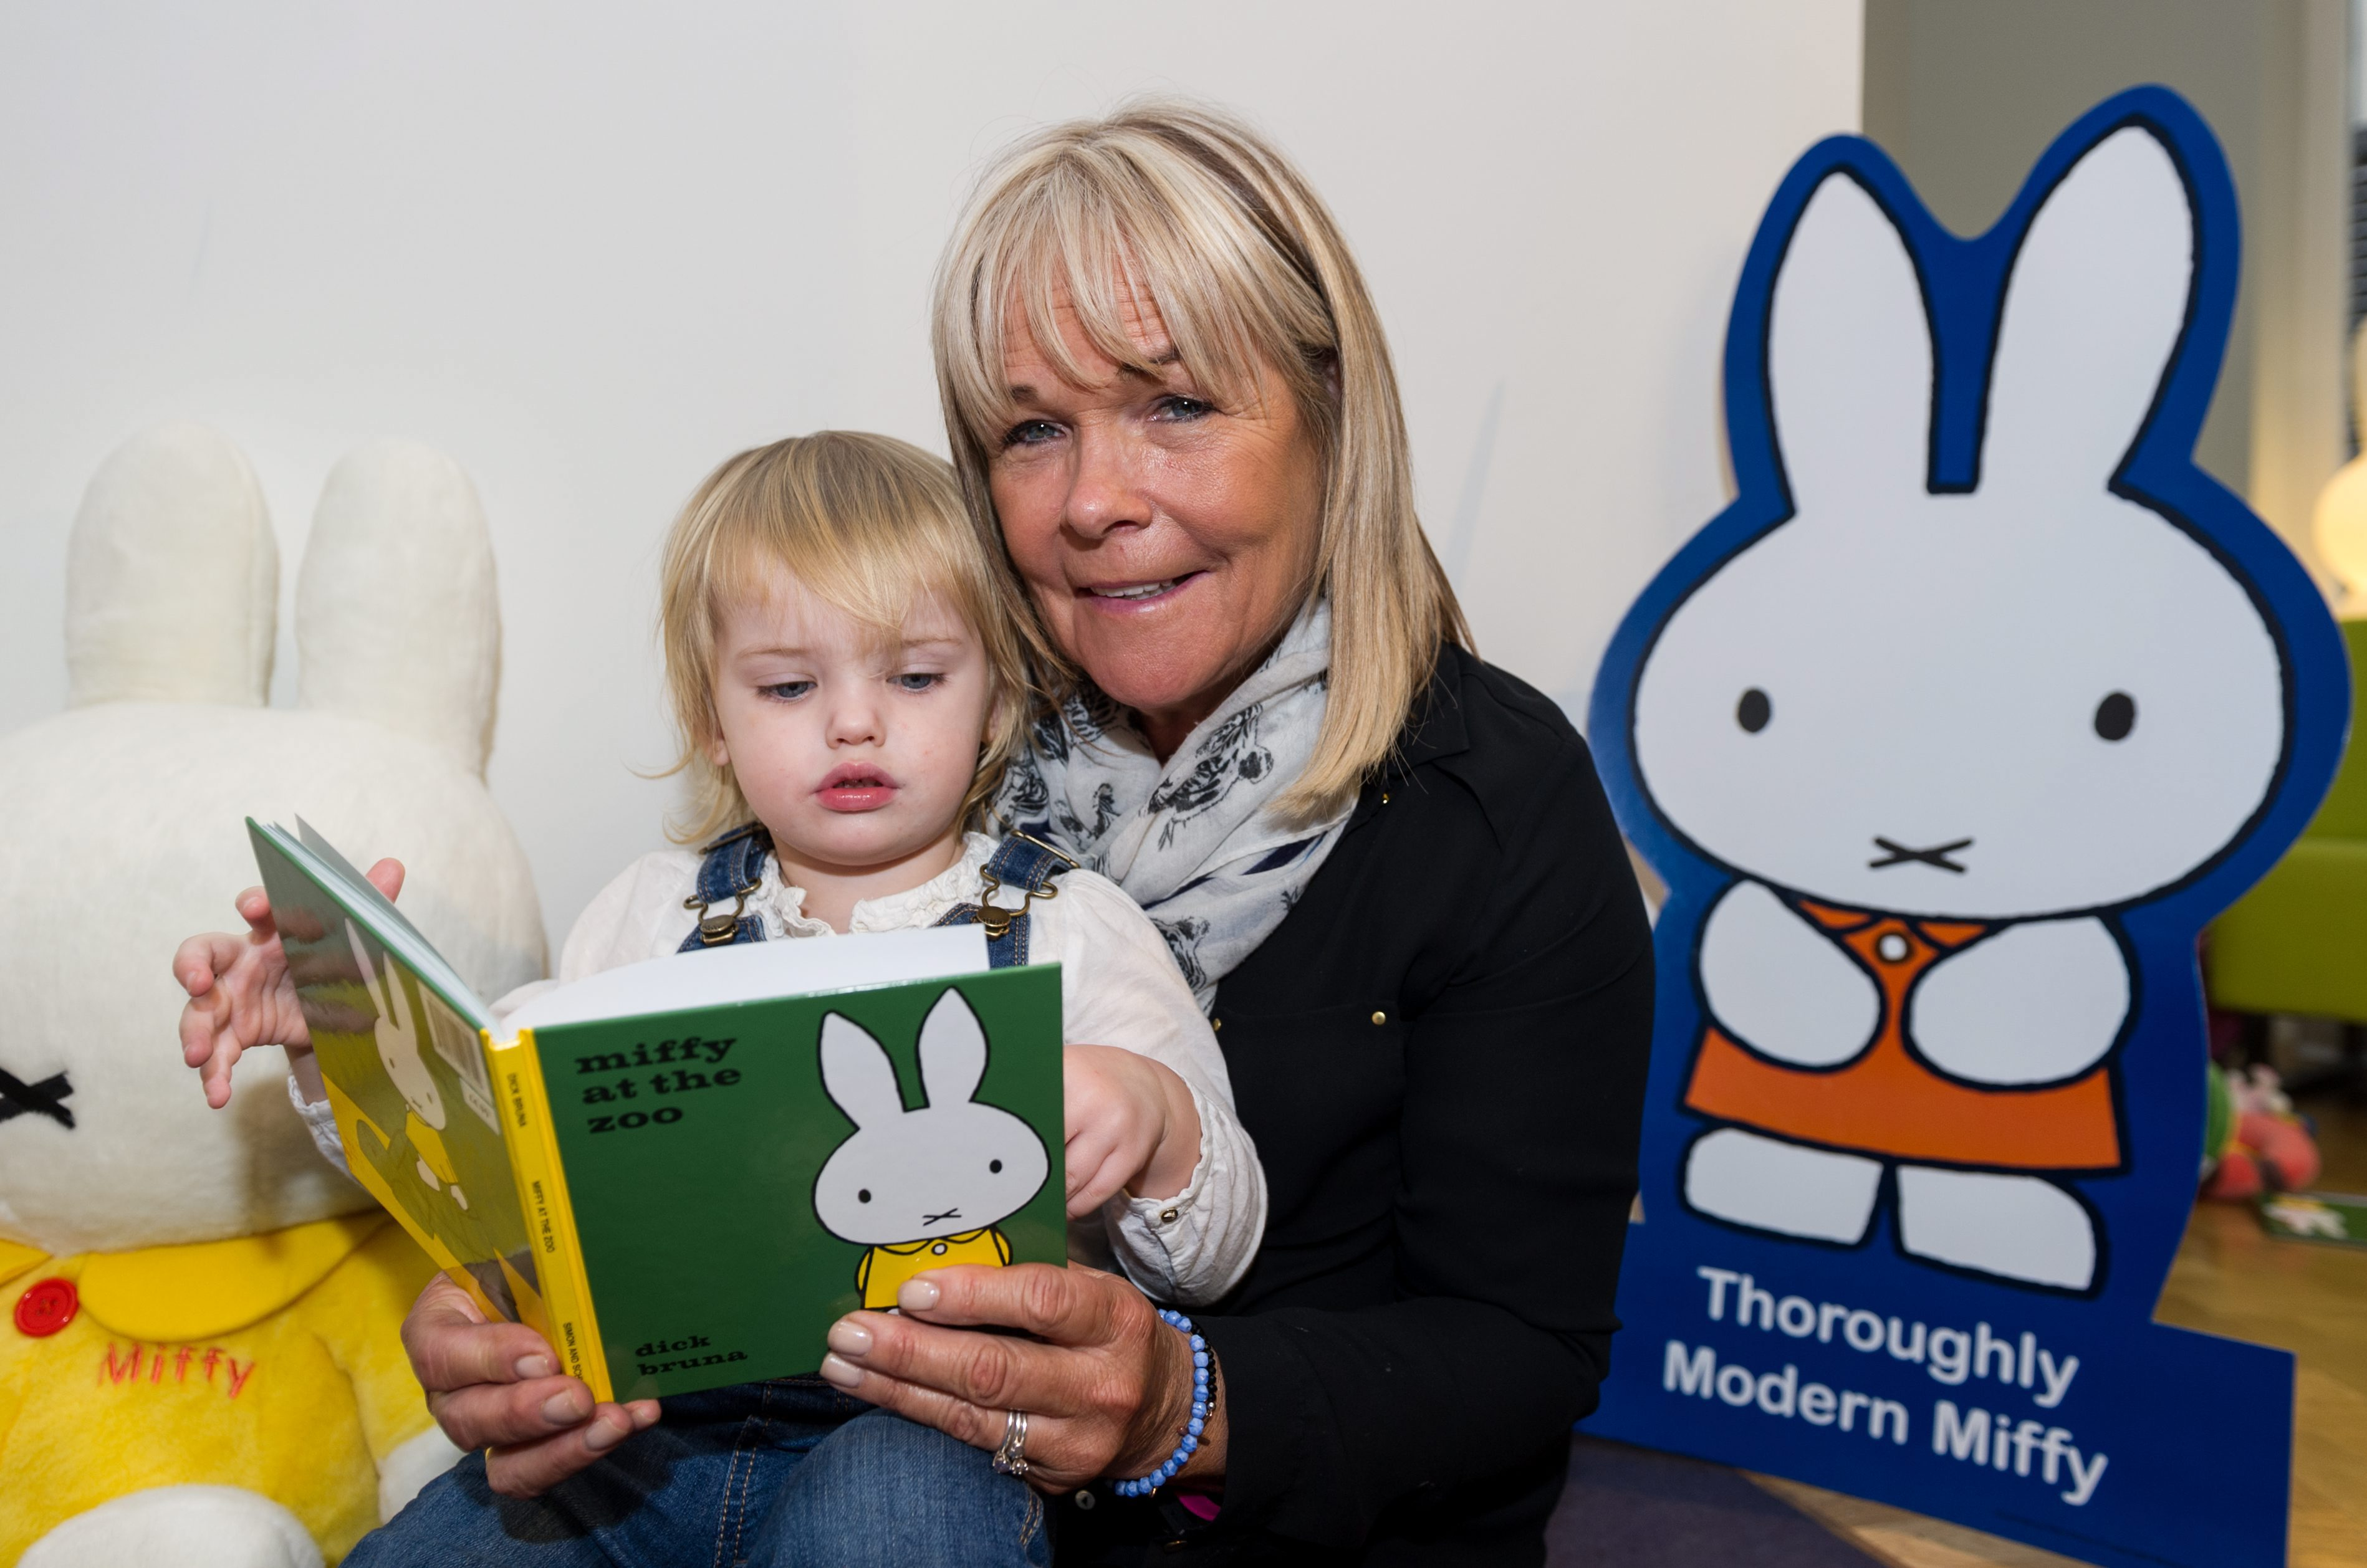 Celebrities make film to mark Miffy book relaunch